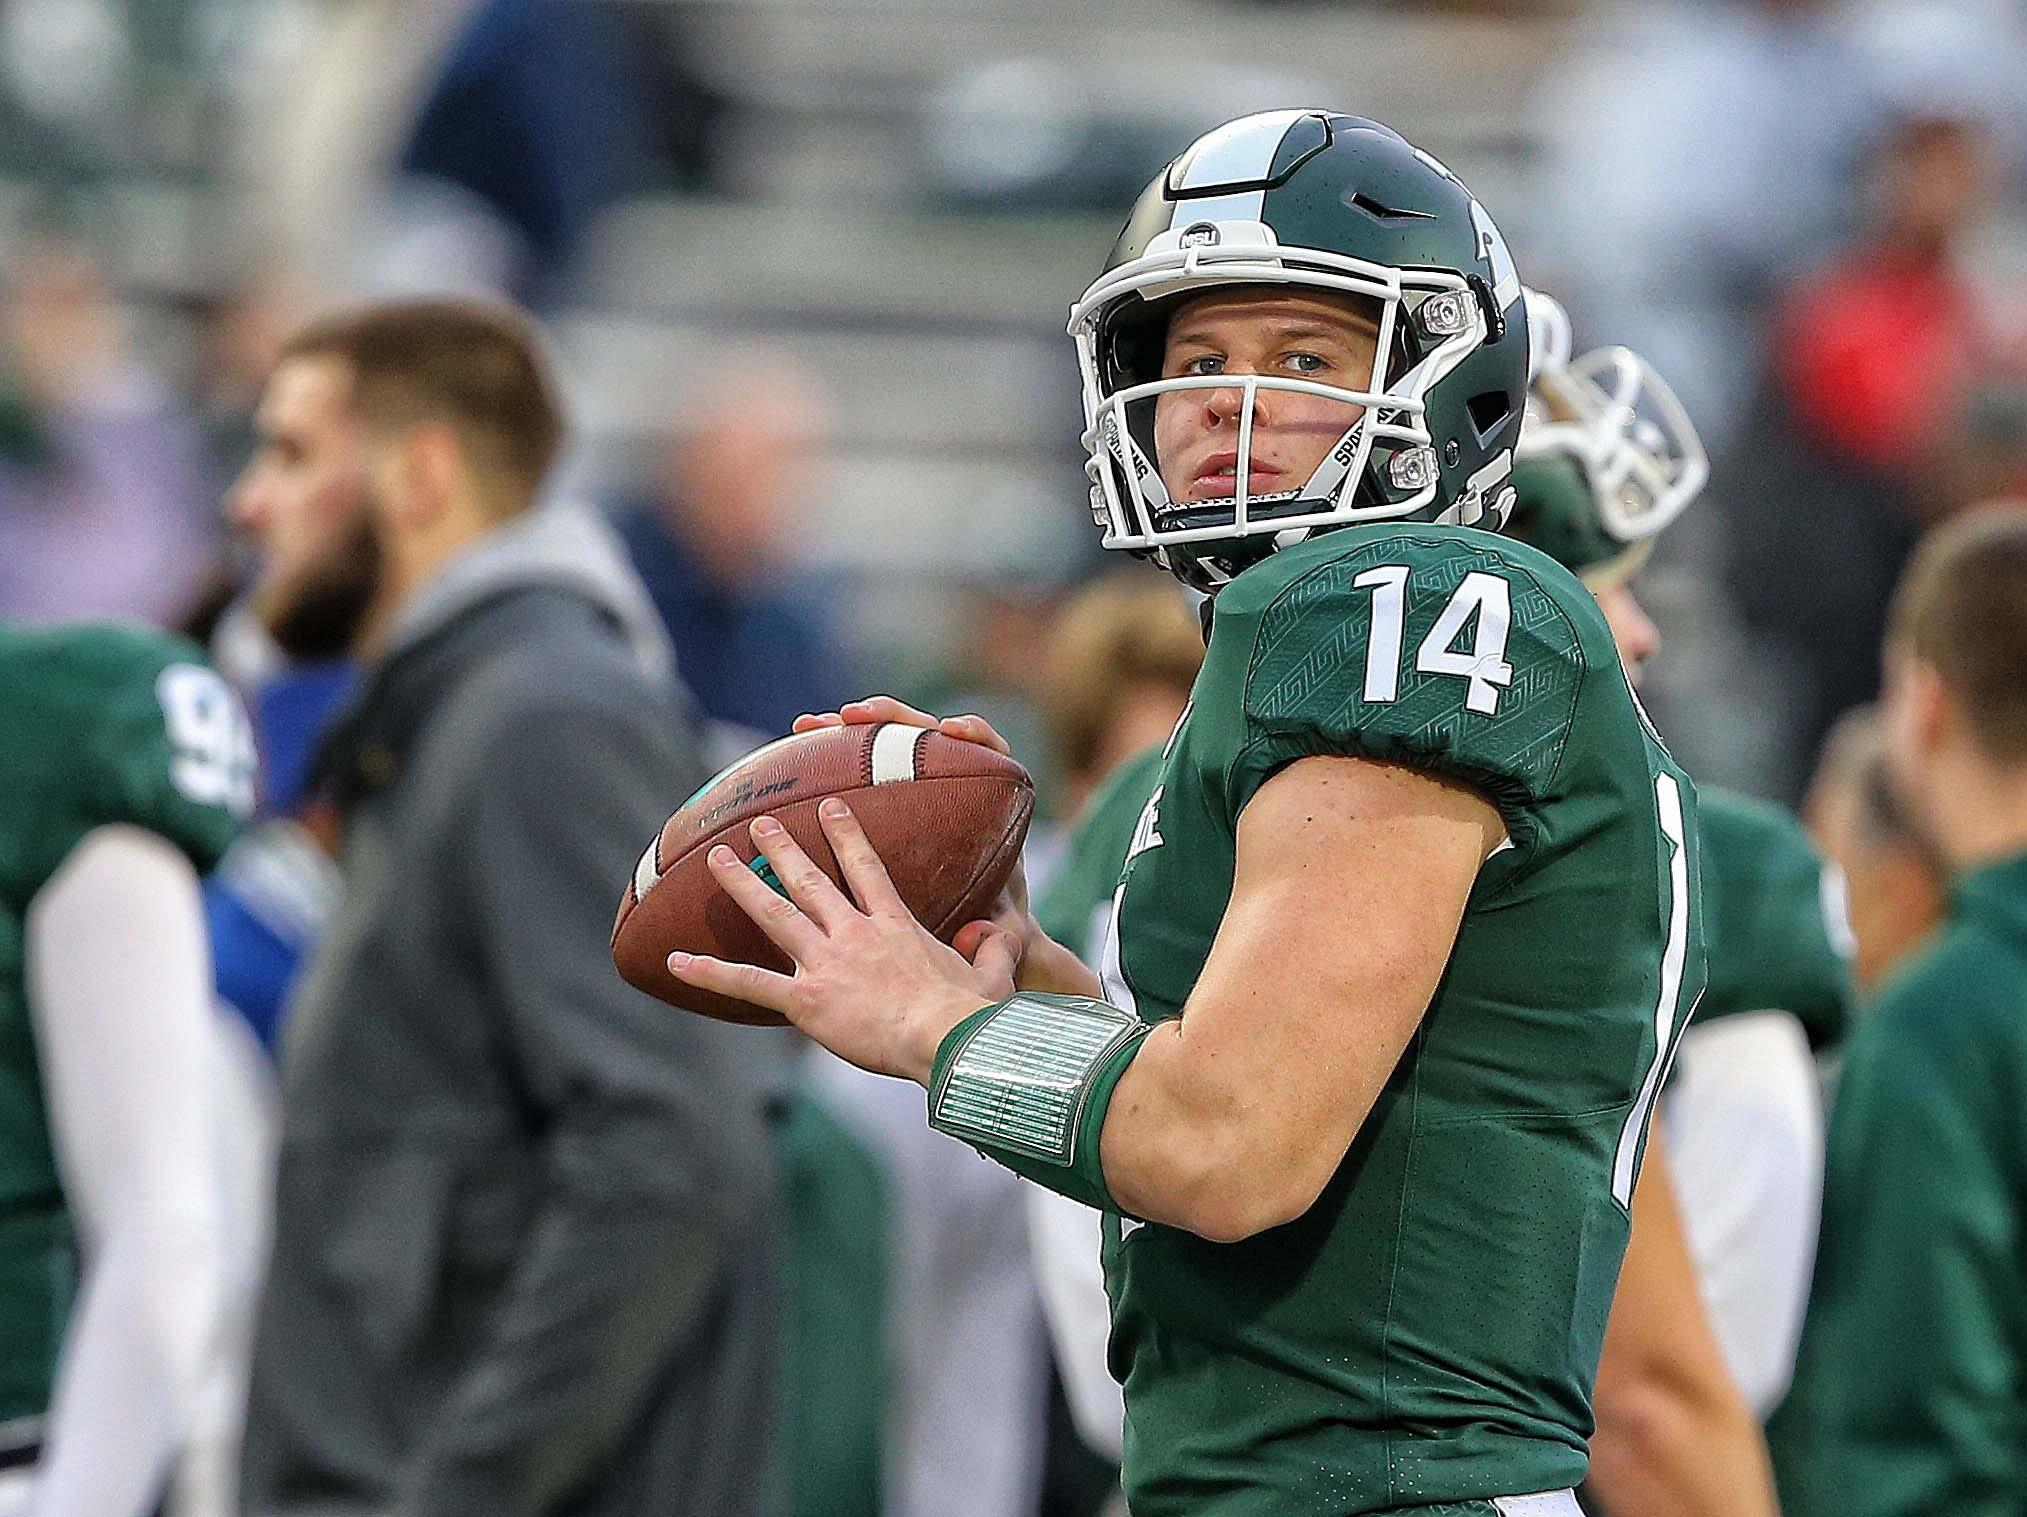 Nov 24, 2018; East Lansing, MI, USA; Michigan State Spartans quarterback Brian Lewerke (14) warms up prior to  a game against the Rutgers Scarlet Knights at Spartan Stadium. Mandatory Credit: Mike Carter-USA TODAY Sports